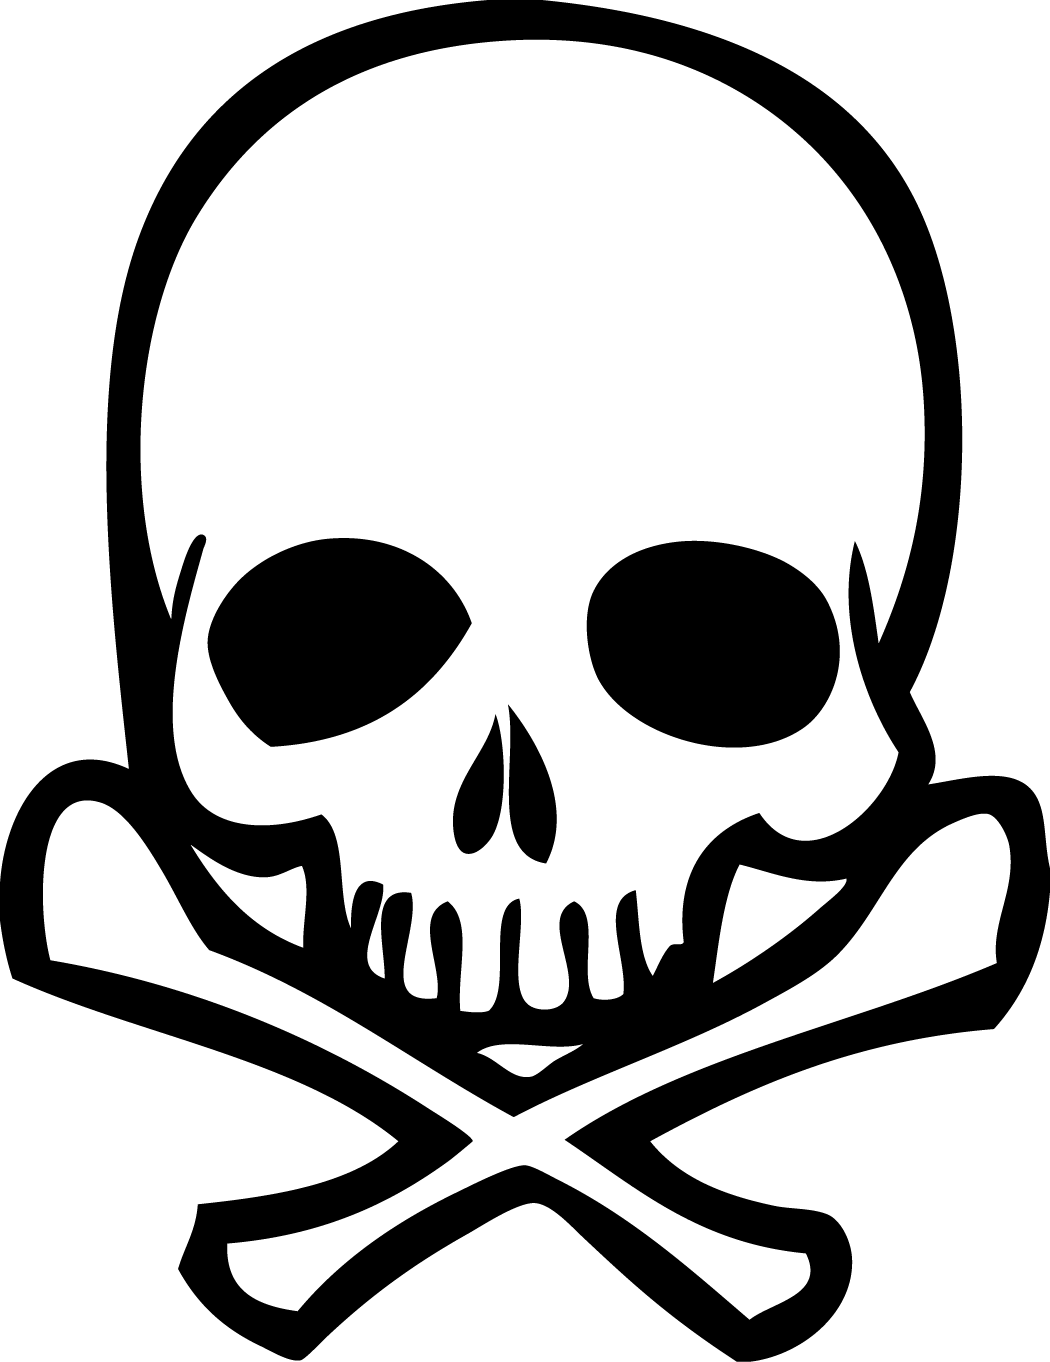 Skull And Crossbones Drawing - ClipArt Best Skull And Cross Drawing